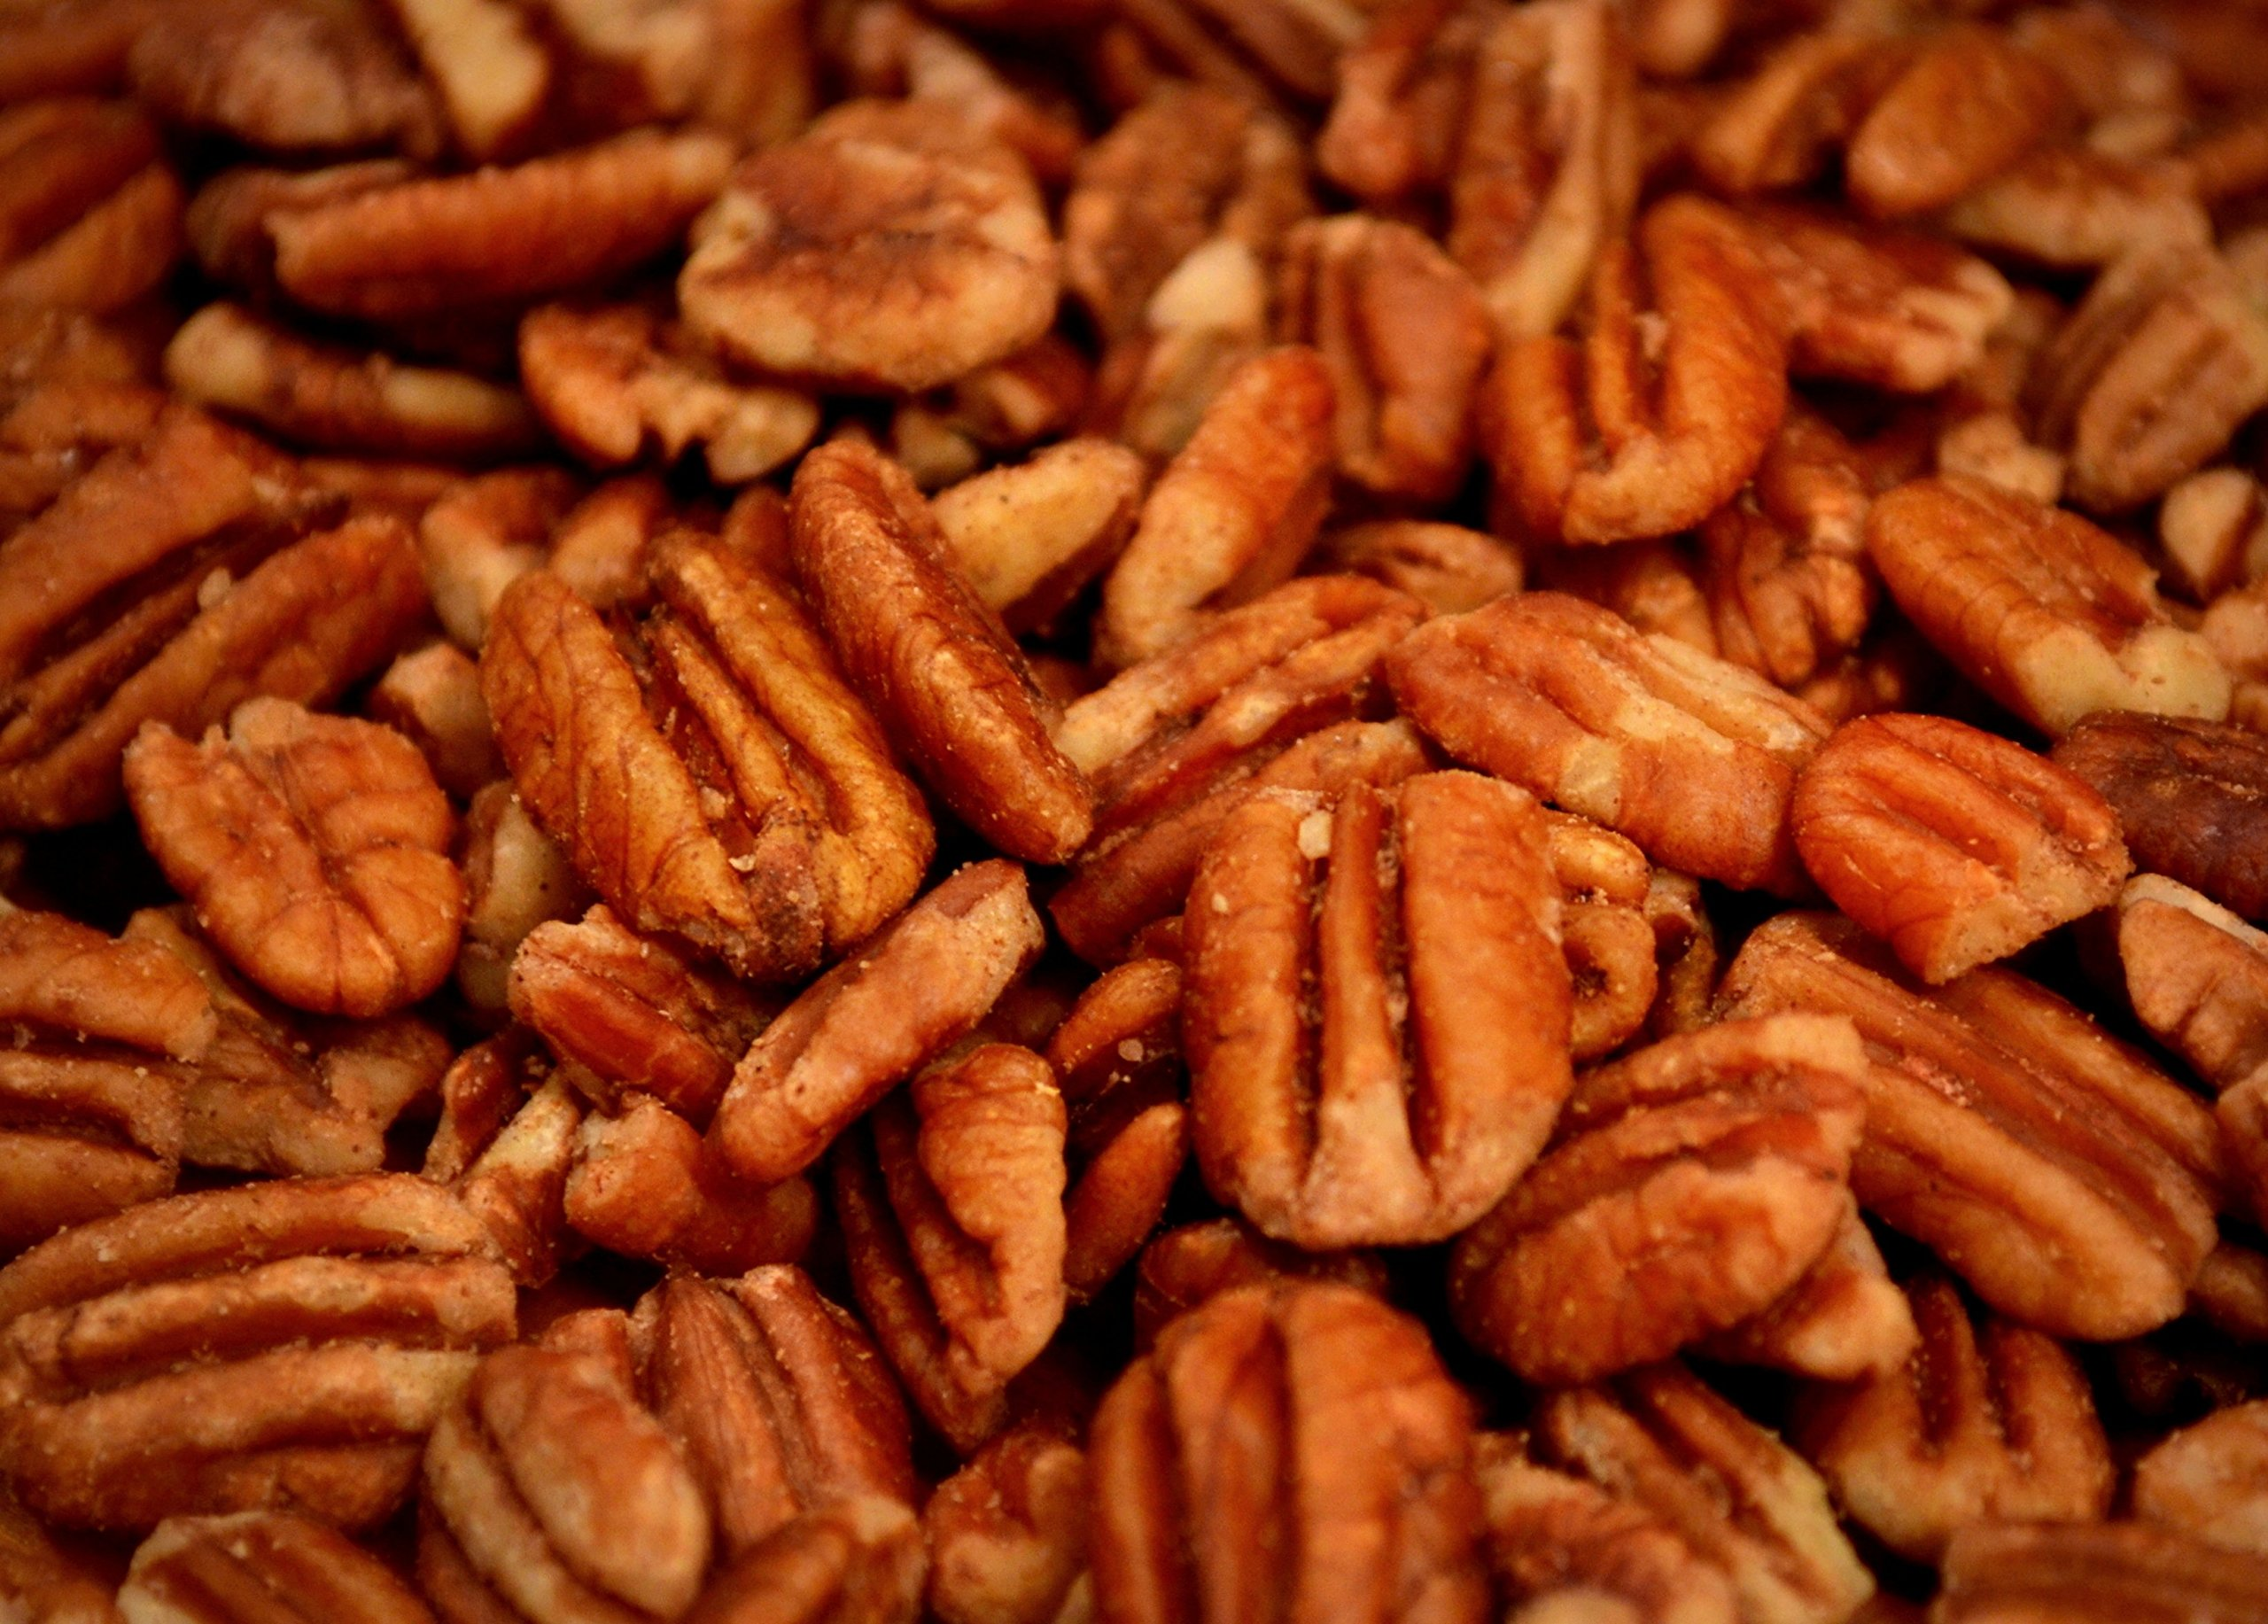 Unsprayed Sprouted 8 lb Raw Certified Organic Family Recipe Crispy Sea Salt Texas Native Pecans-Fresh Direct Ship